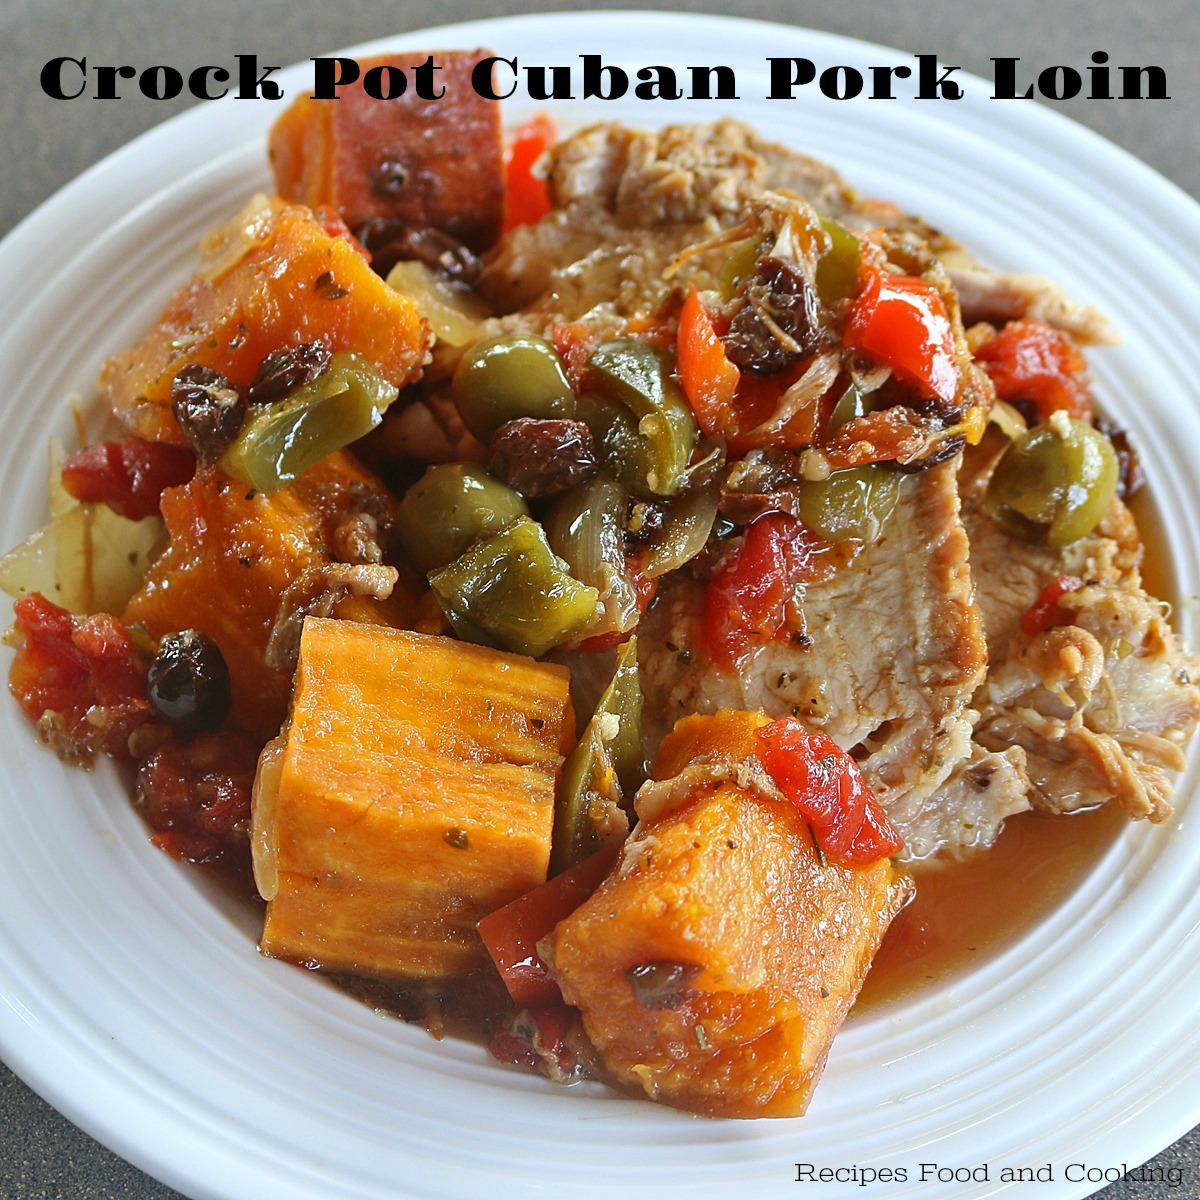 Crock Pot Cuban Pork Loin